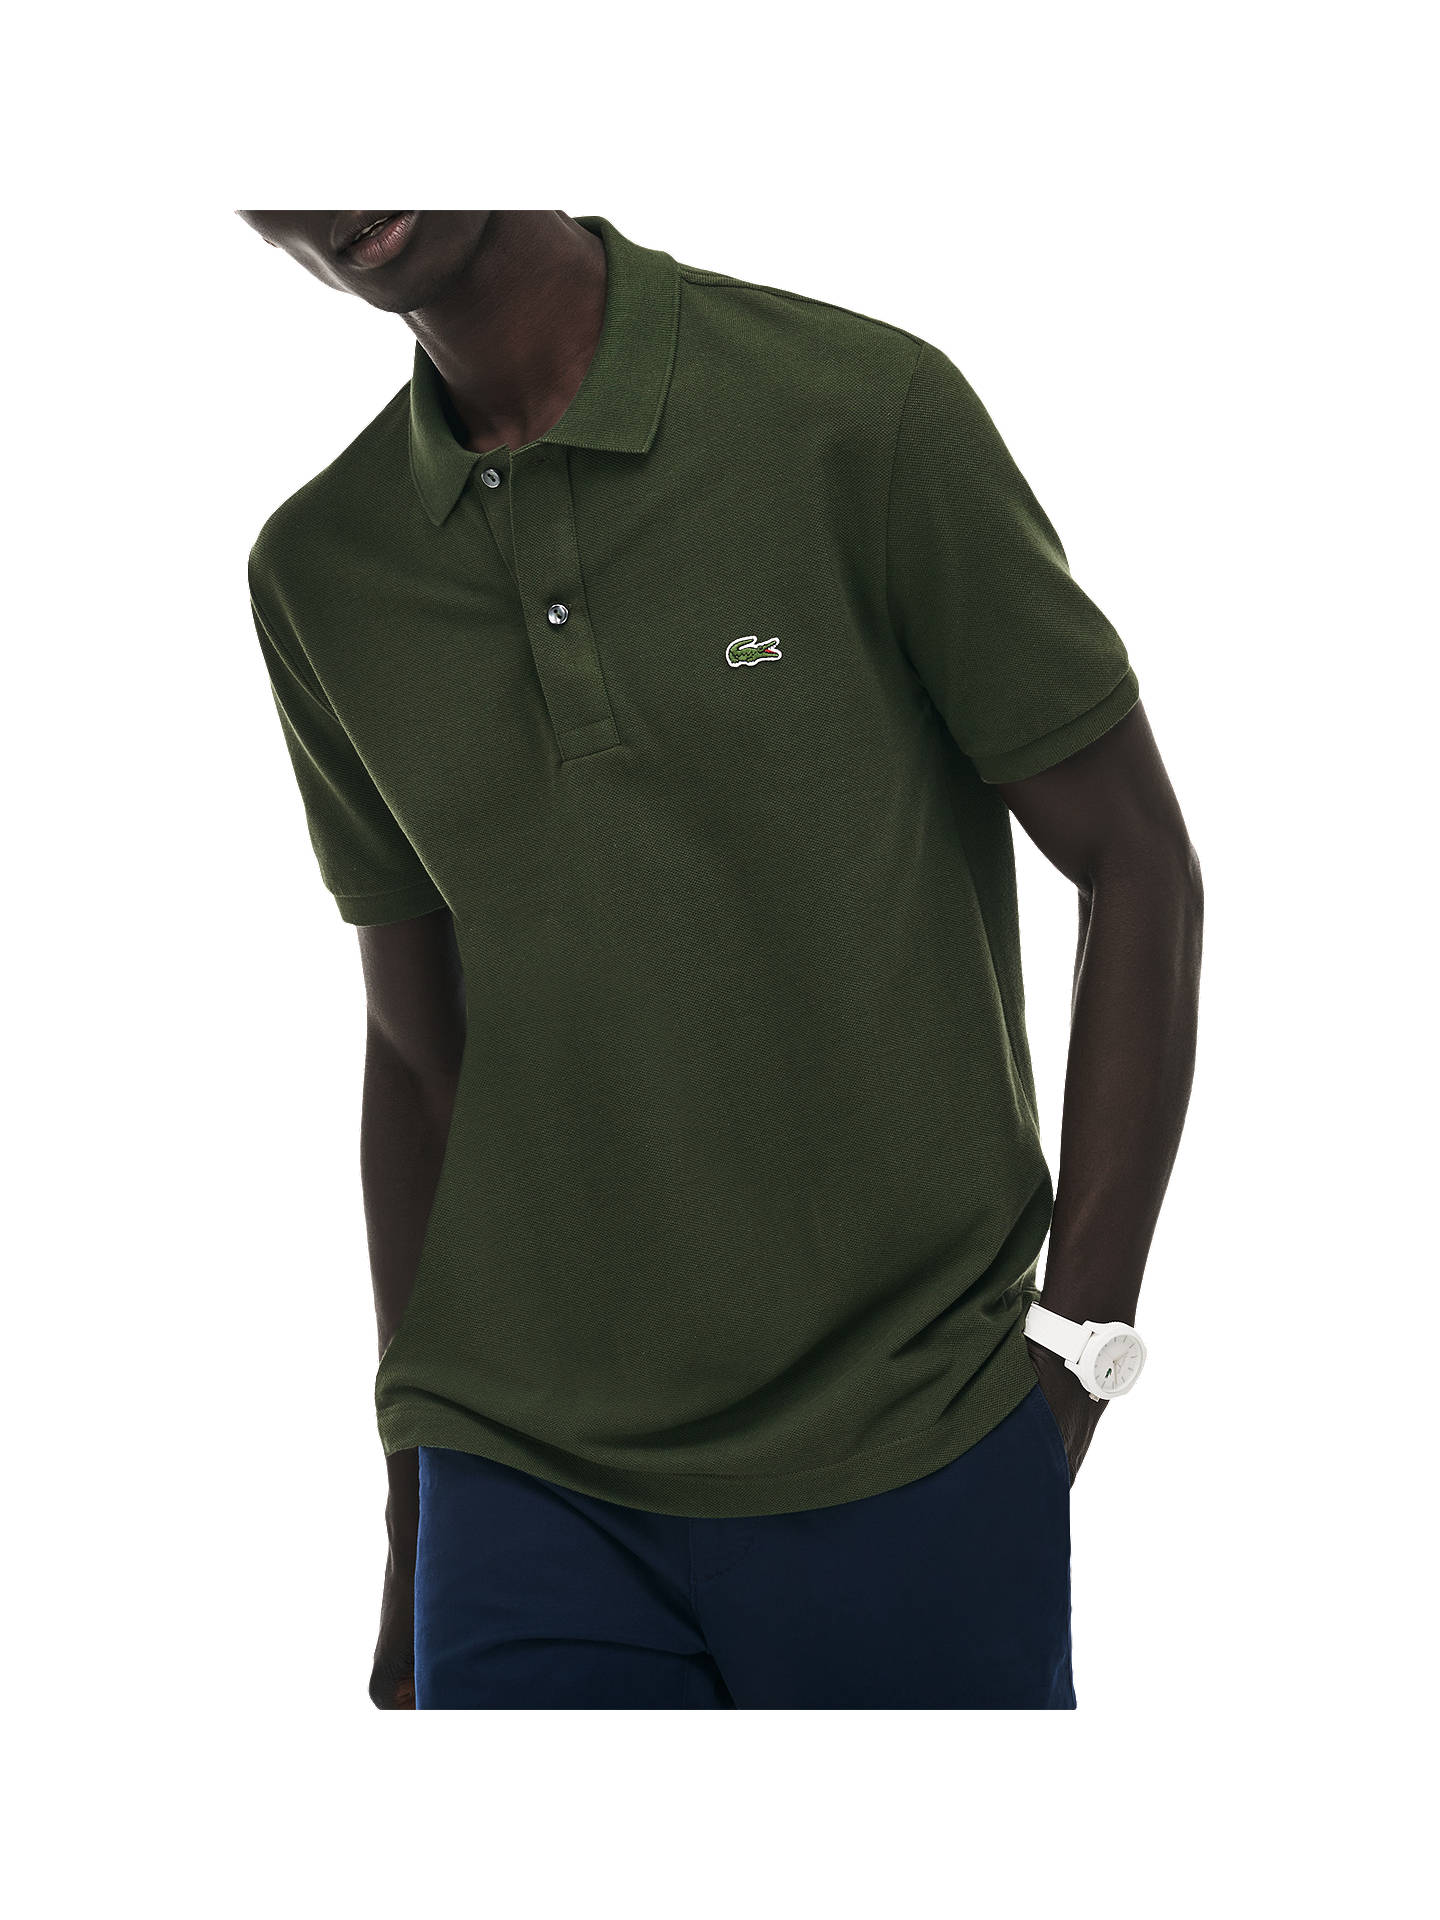 78f84bfd56 Buy Lacoste Classic Slim Fit Short Sleeve Polo Shirt, Army Green, S Online  at ...